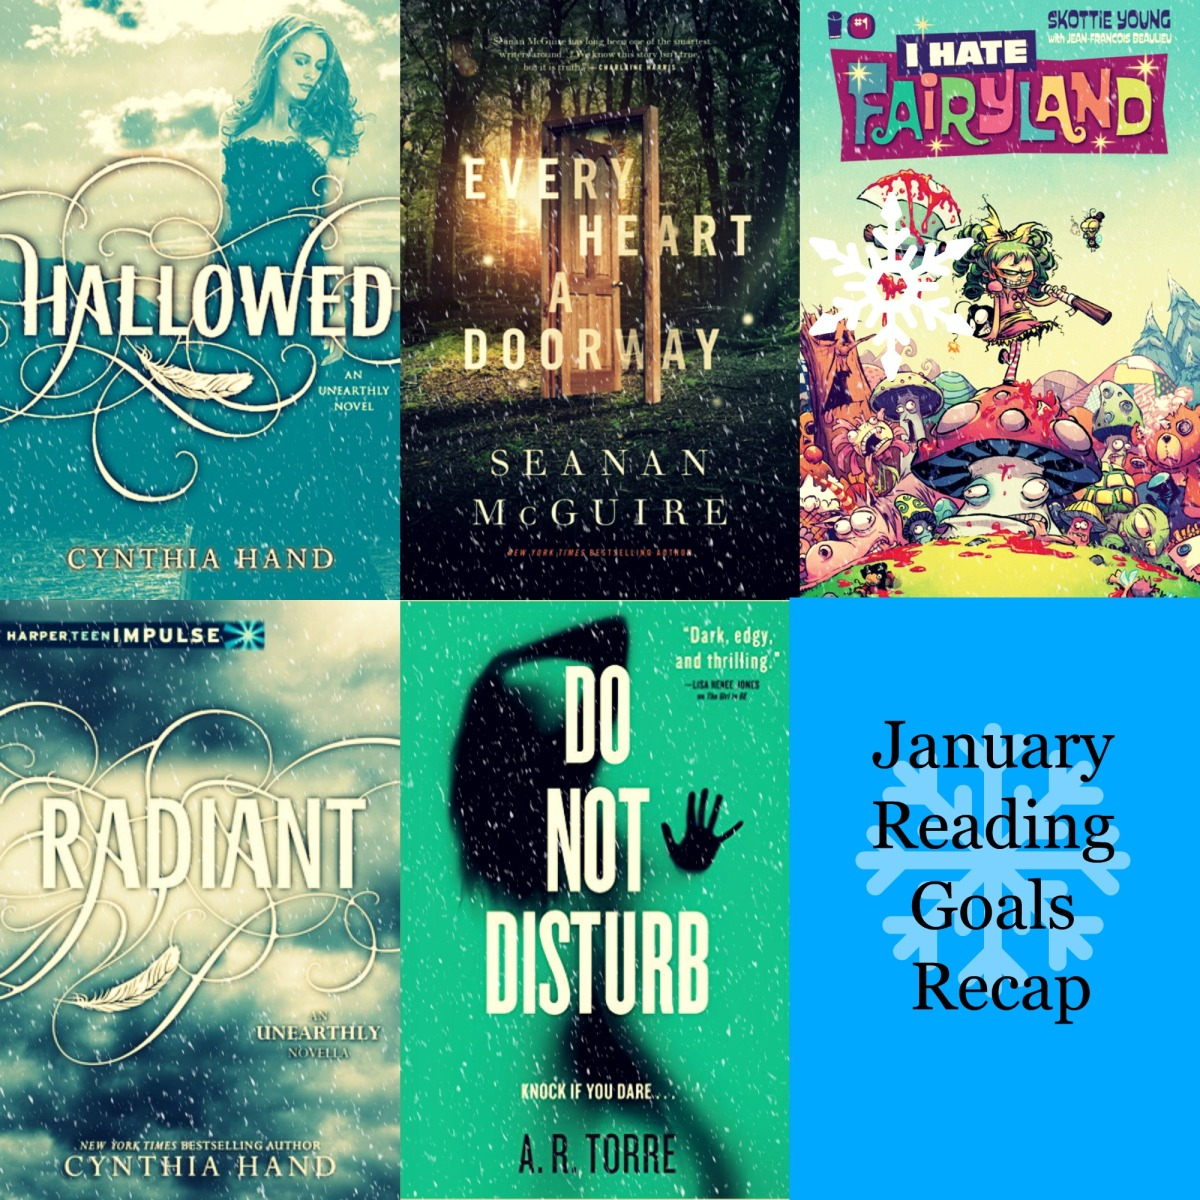 Recap #1: January Reading Goals